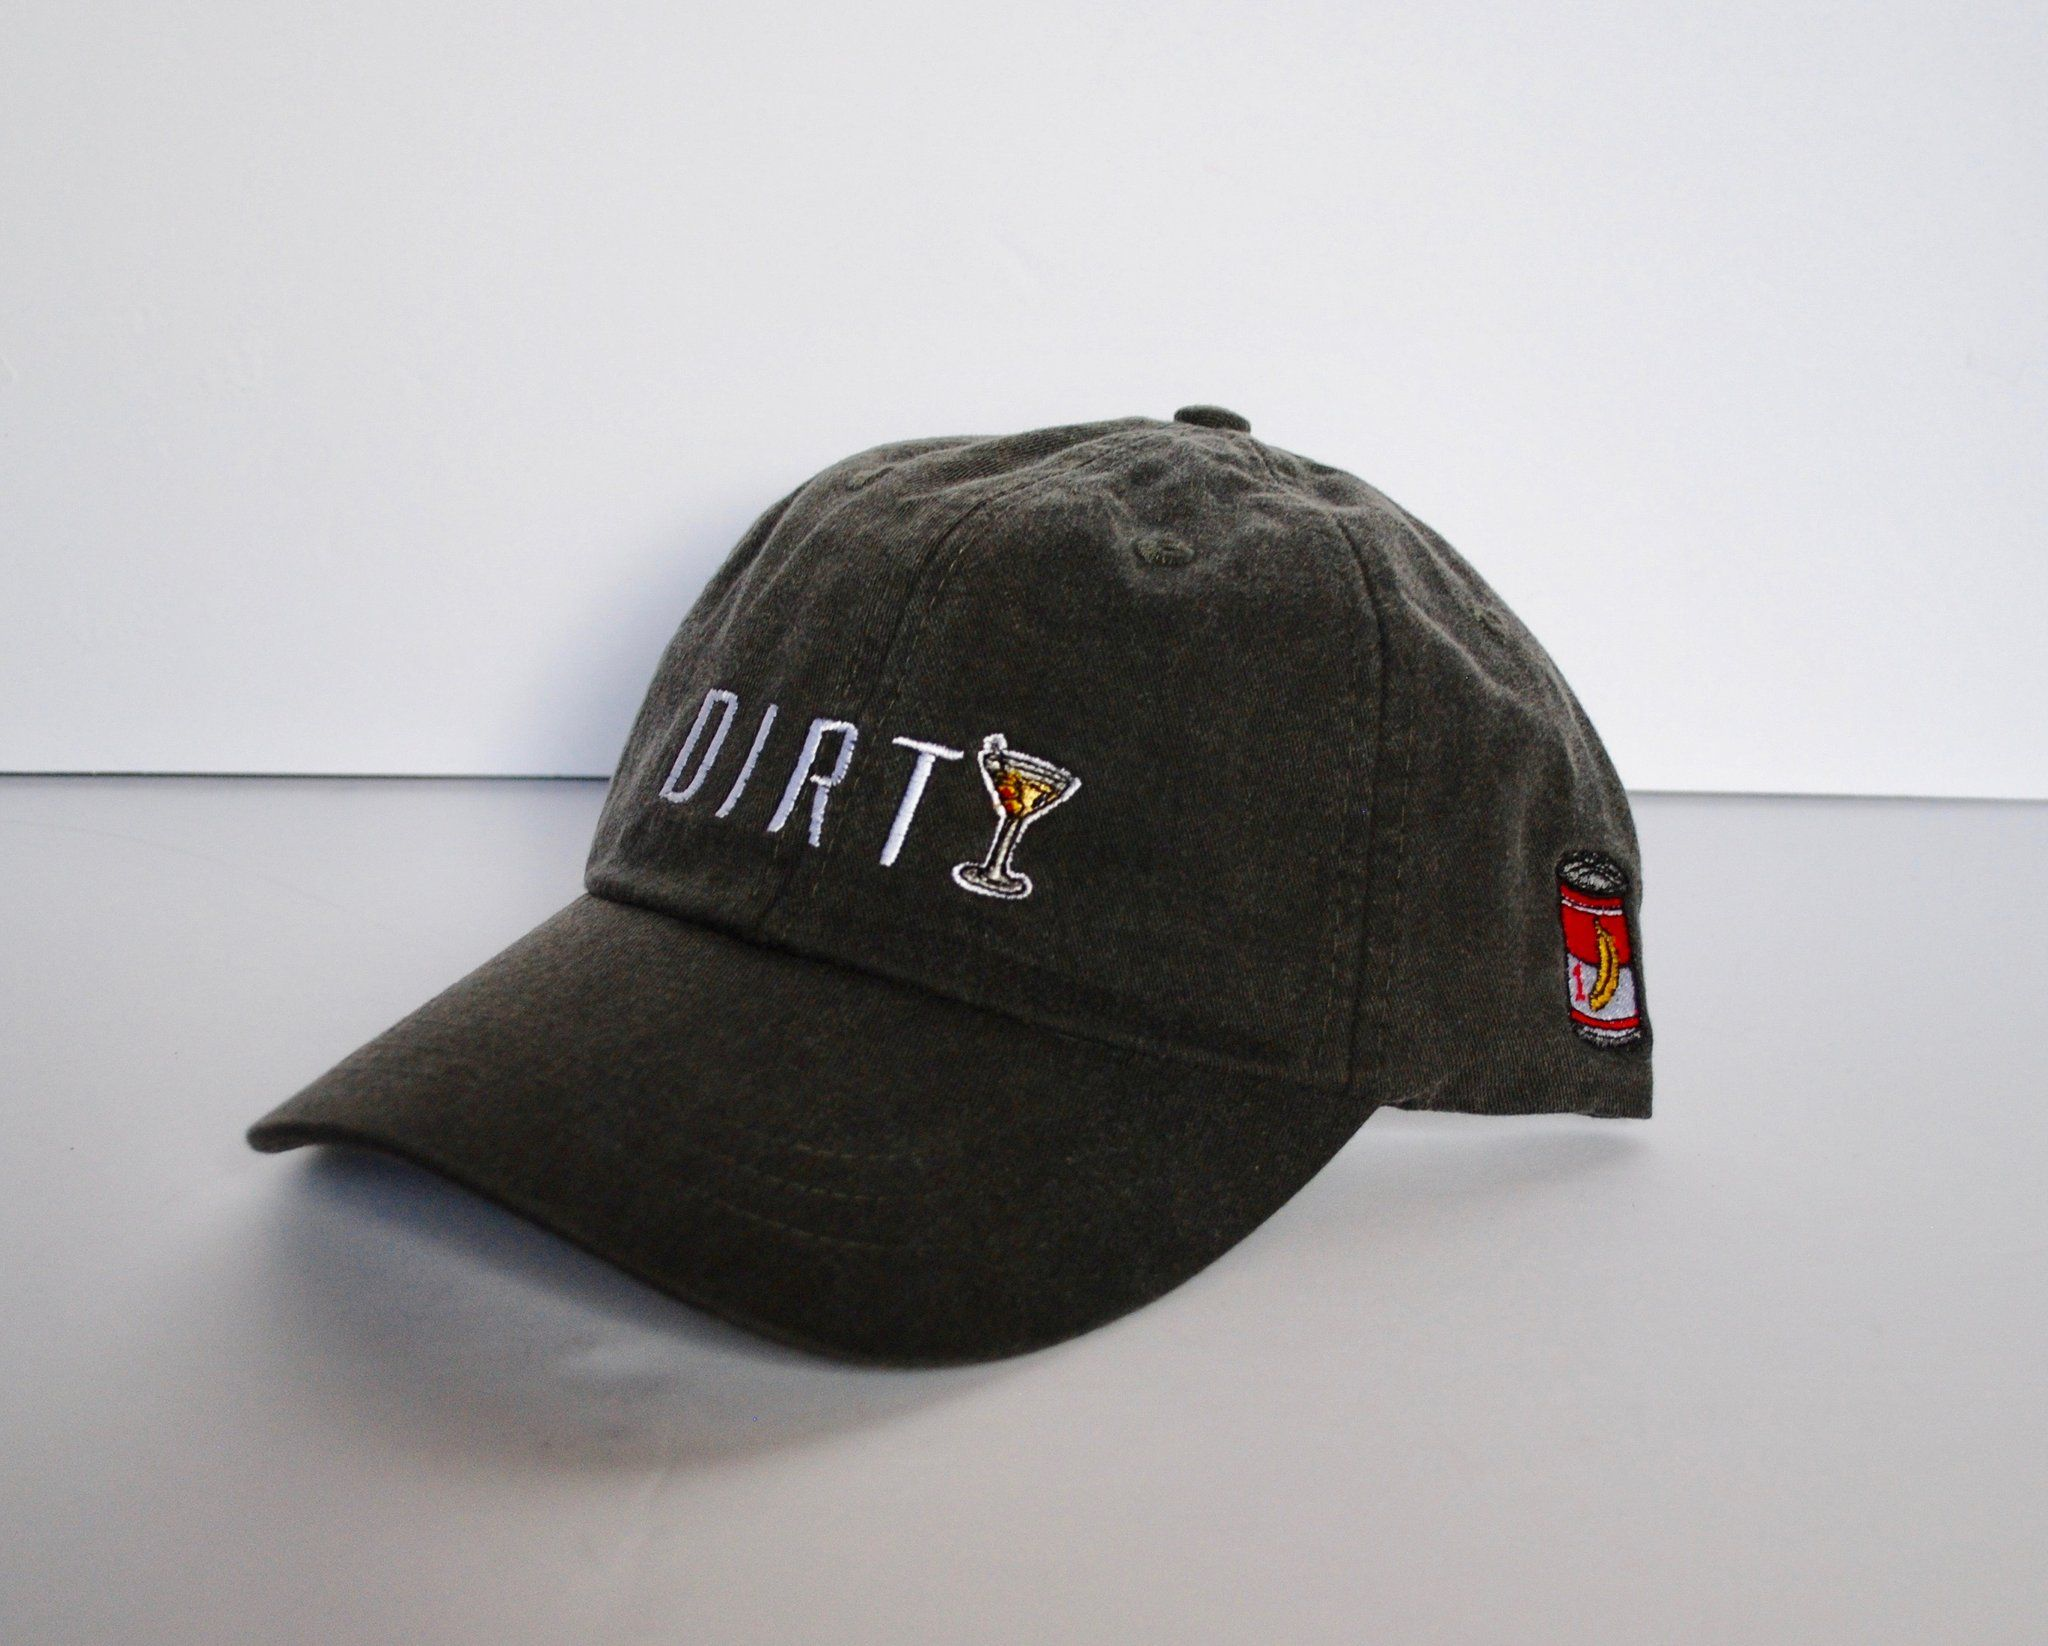 b9e731ba85d The  Dirty Martini  Dad Hat. Find this Pin and more on Hats ...